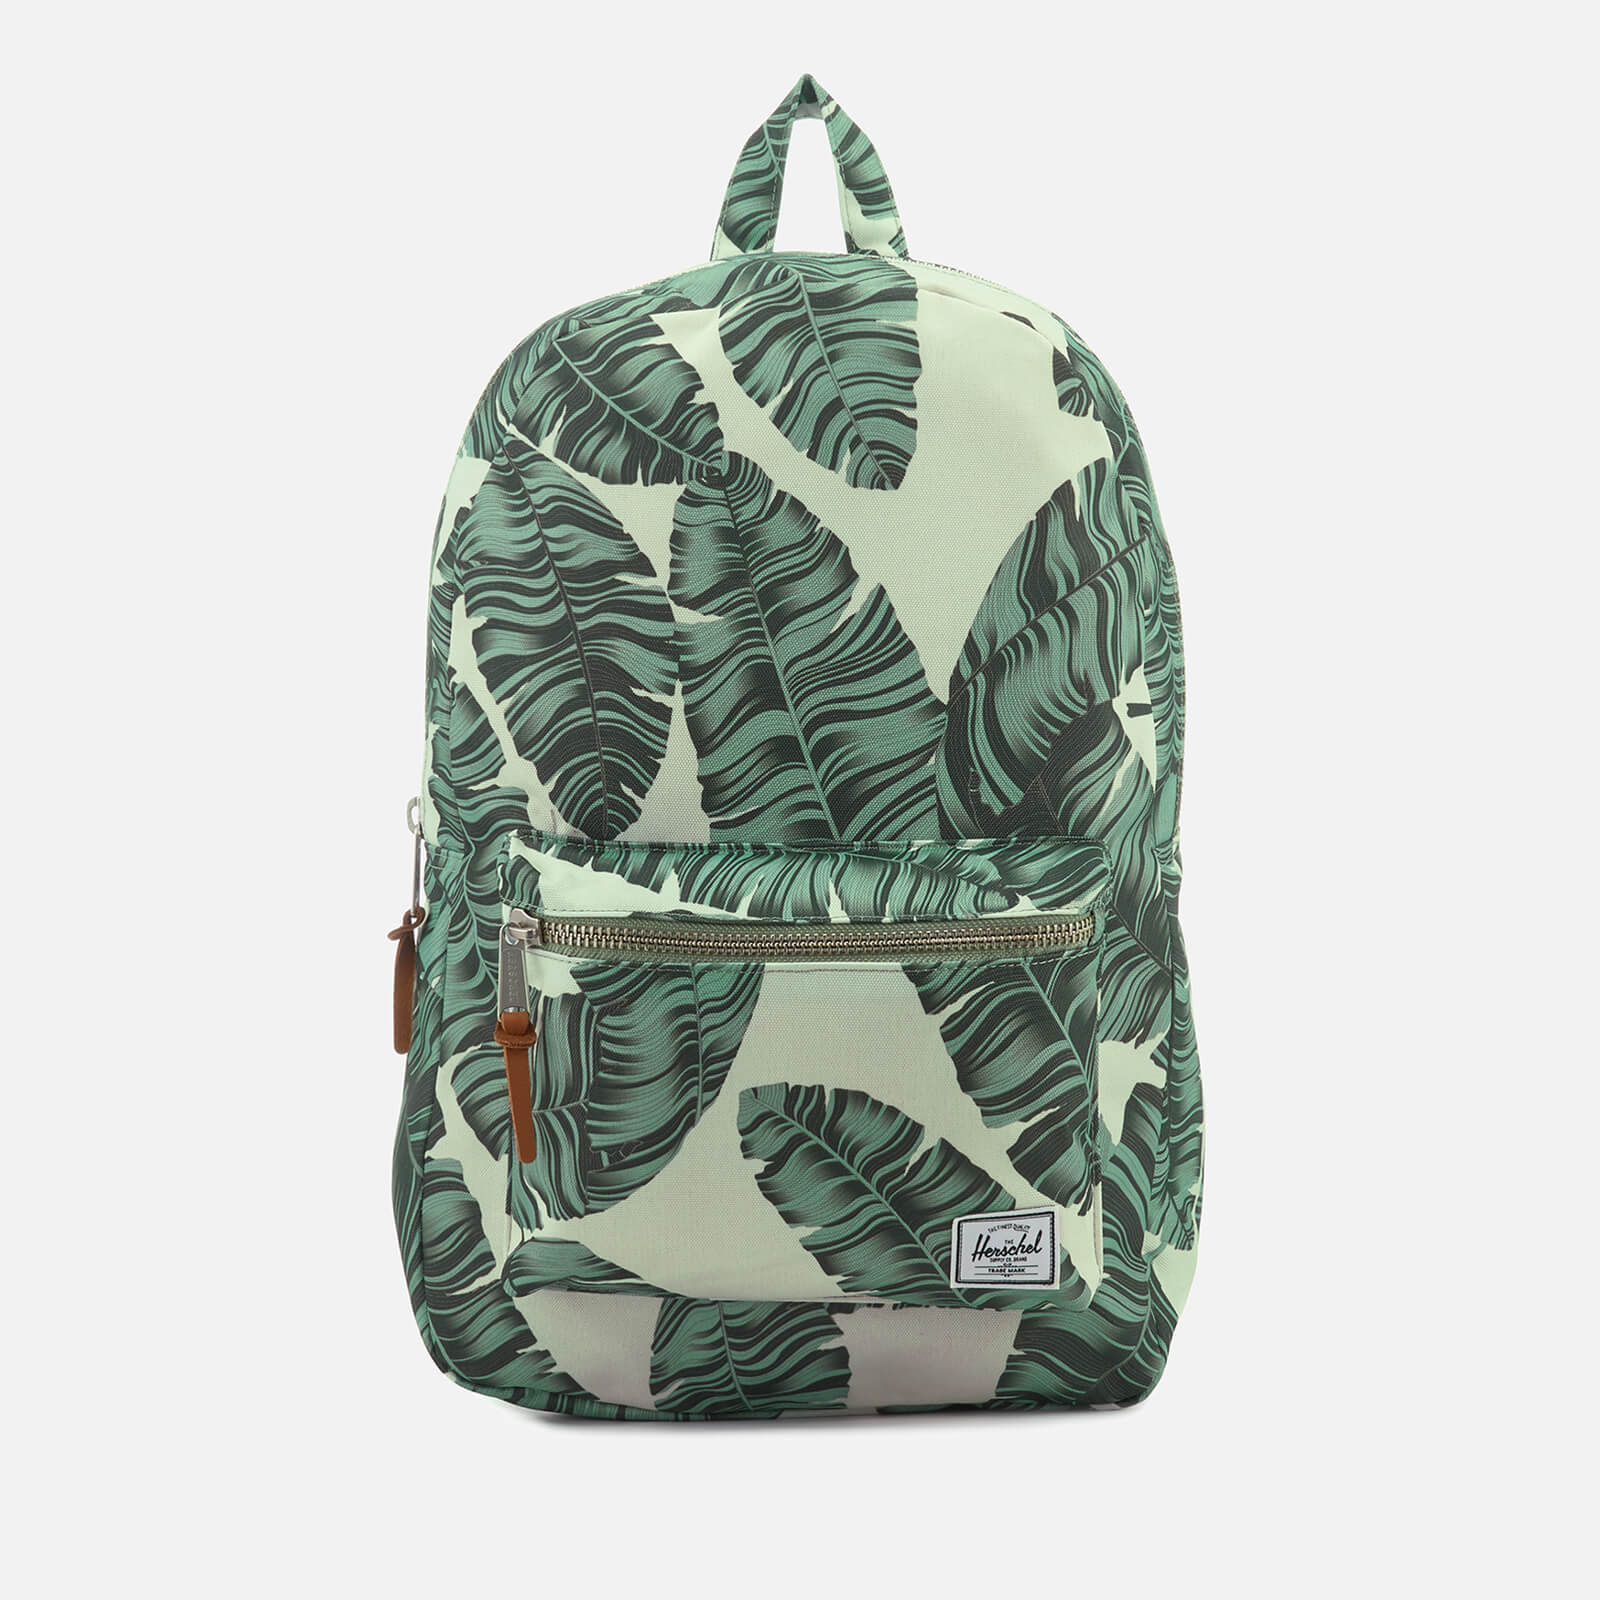 a08b6358dc9a Herschel Supply Co. Men s Settlement Backpack - Silver Birch Palm - Free UK  Delivery over £50